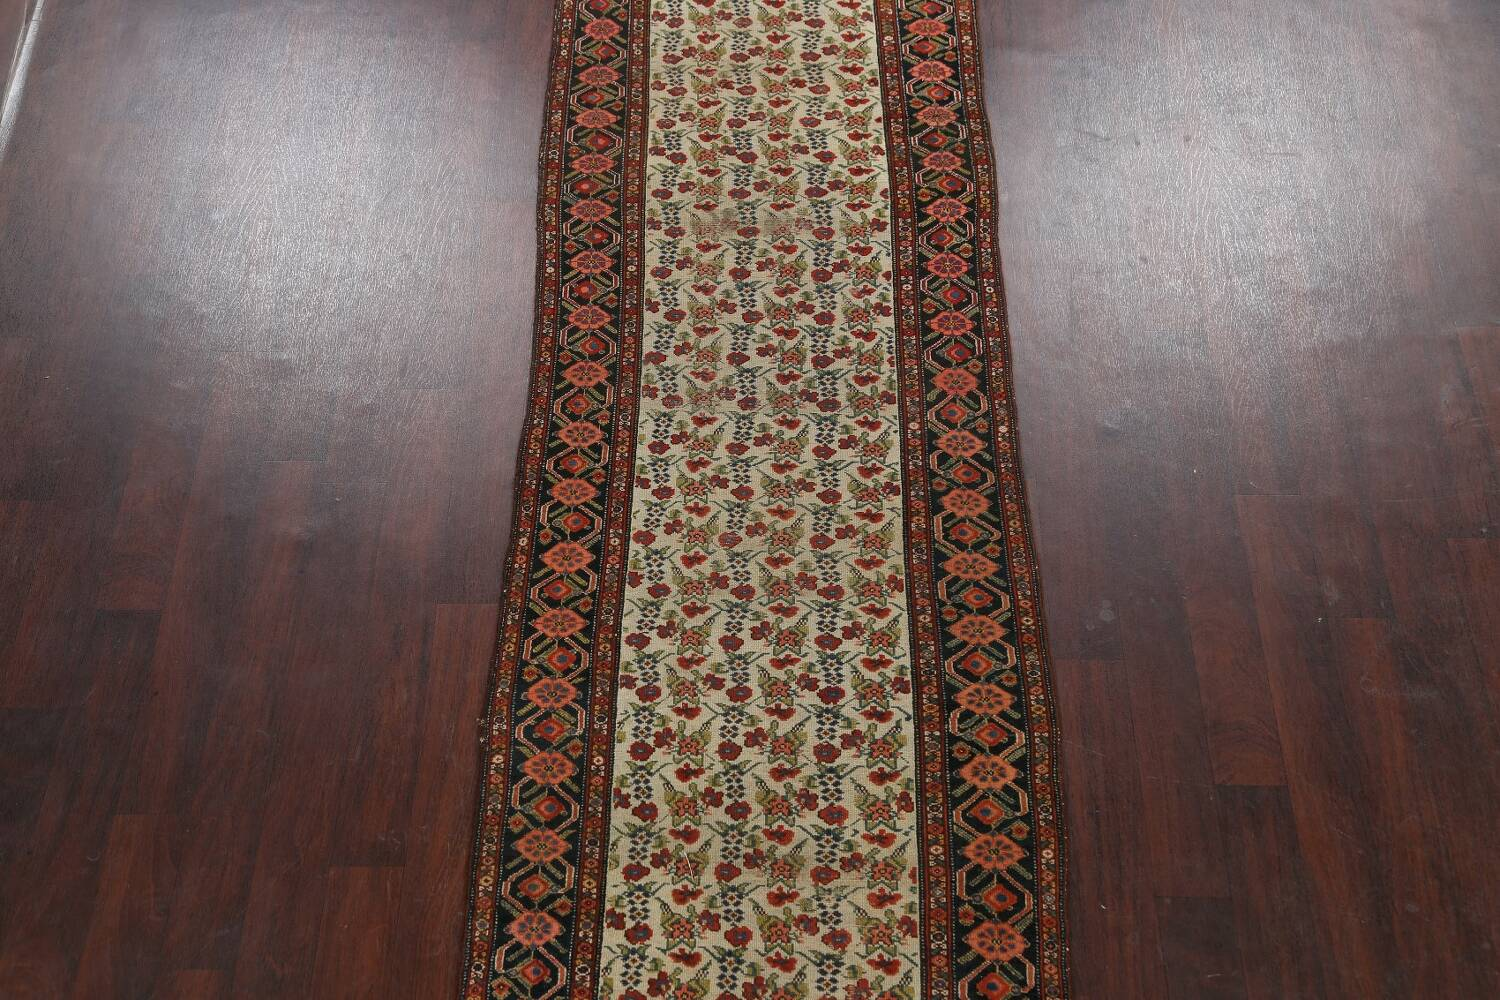 Pre-1900 Antique Vegetable Dye Malayer Persian Runner Rug 3x16 image 3